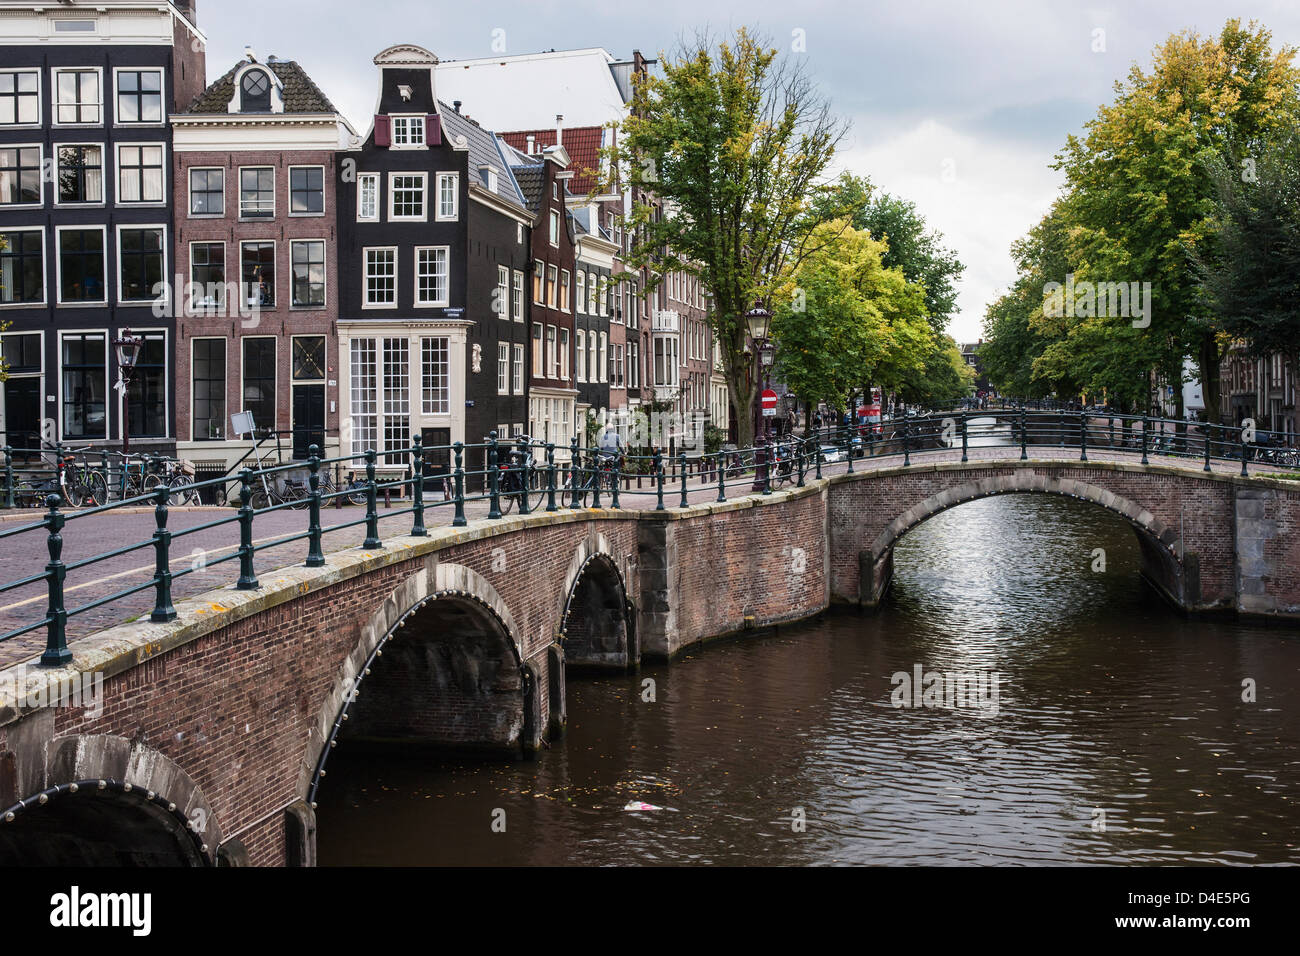 Canal bridges amsterdam netherlands stock photo royalty for Design bridge amsterdam